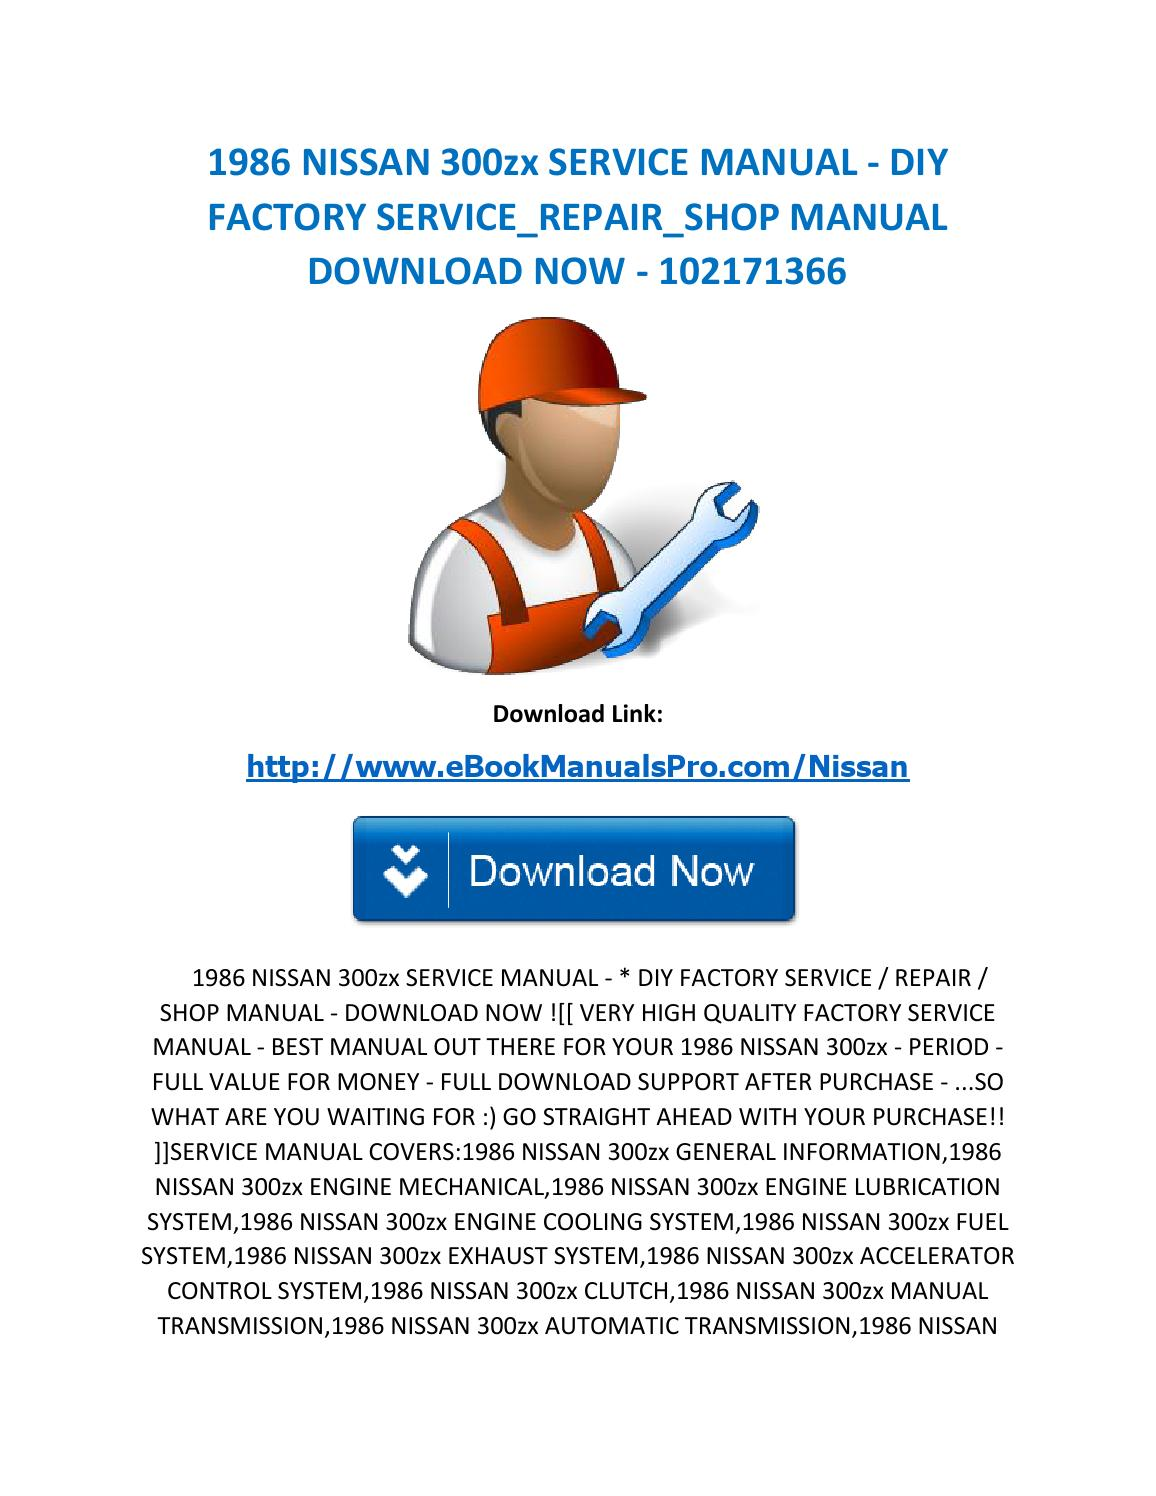 1986 nissan 300zx service manual diy factory service repair shop manual  download now 102171366 by ebookmanualspro - issuu